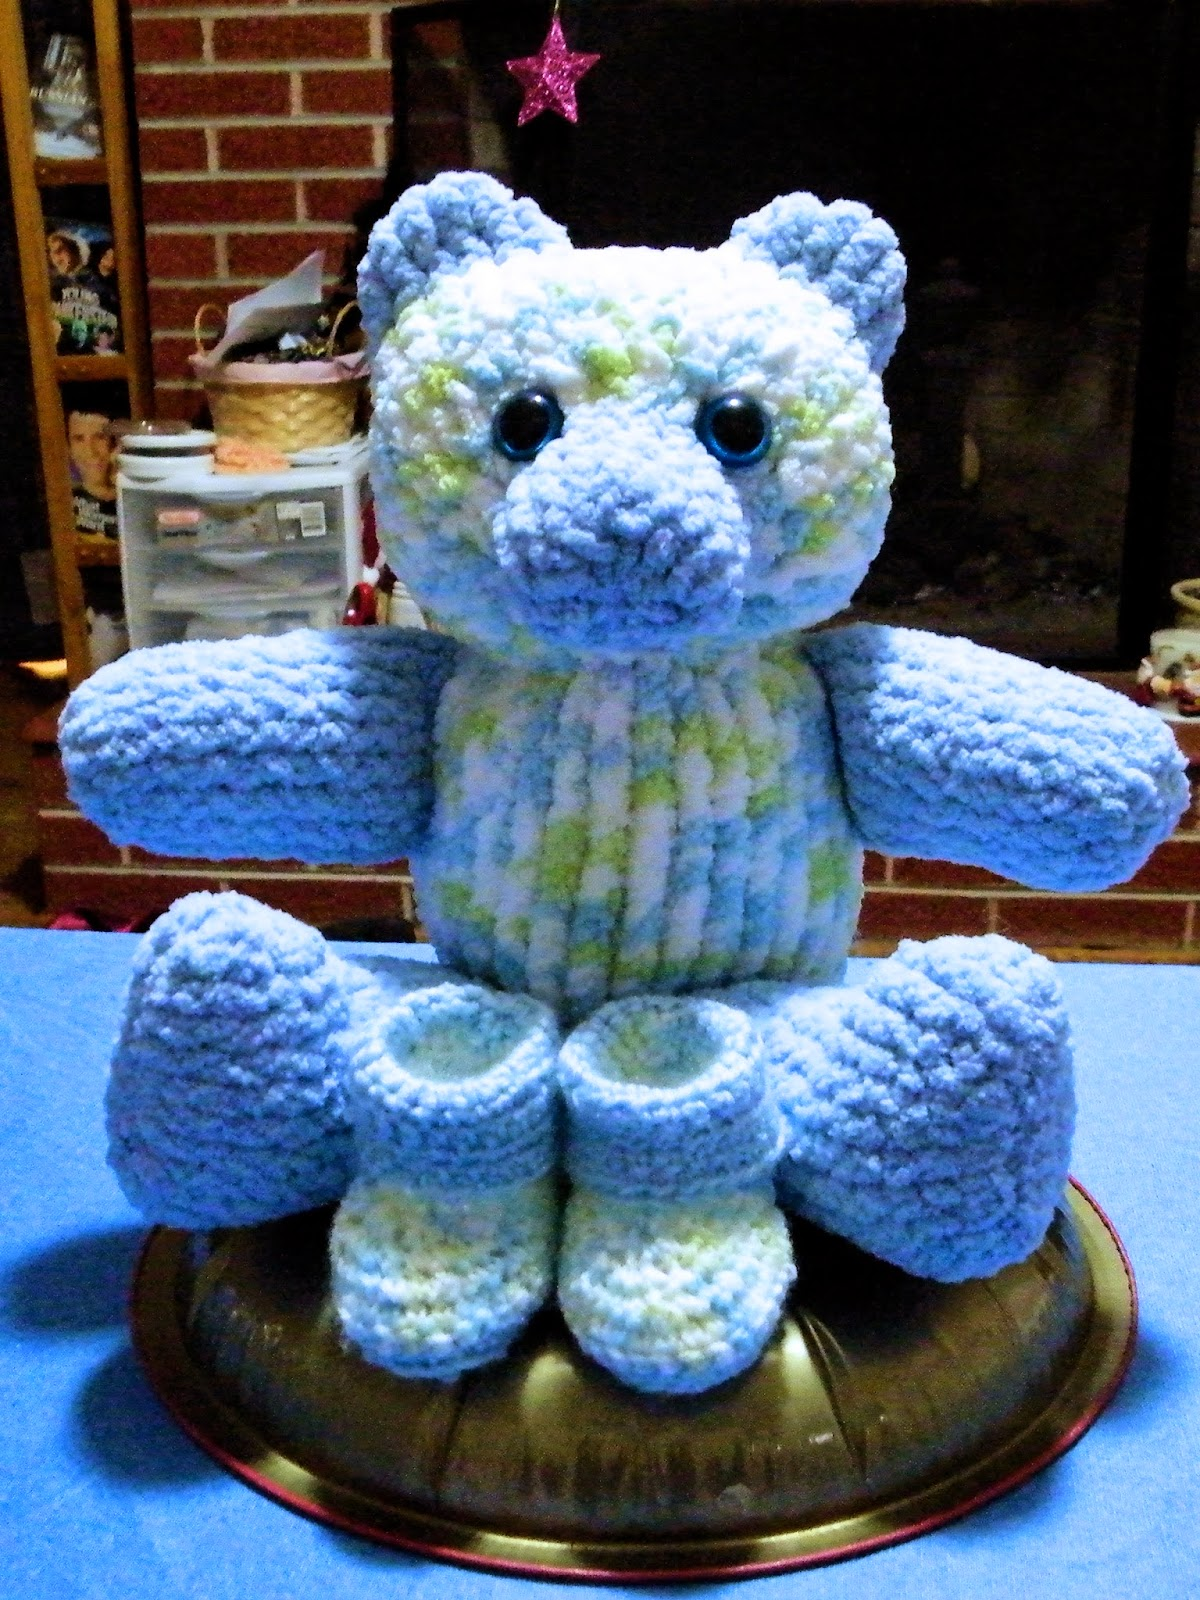 Knitting Patterns Teddy Bear Stuffed Animals : The Loom Muse : How to Loom Knit a Large Teddy Bear